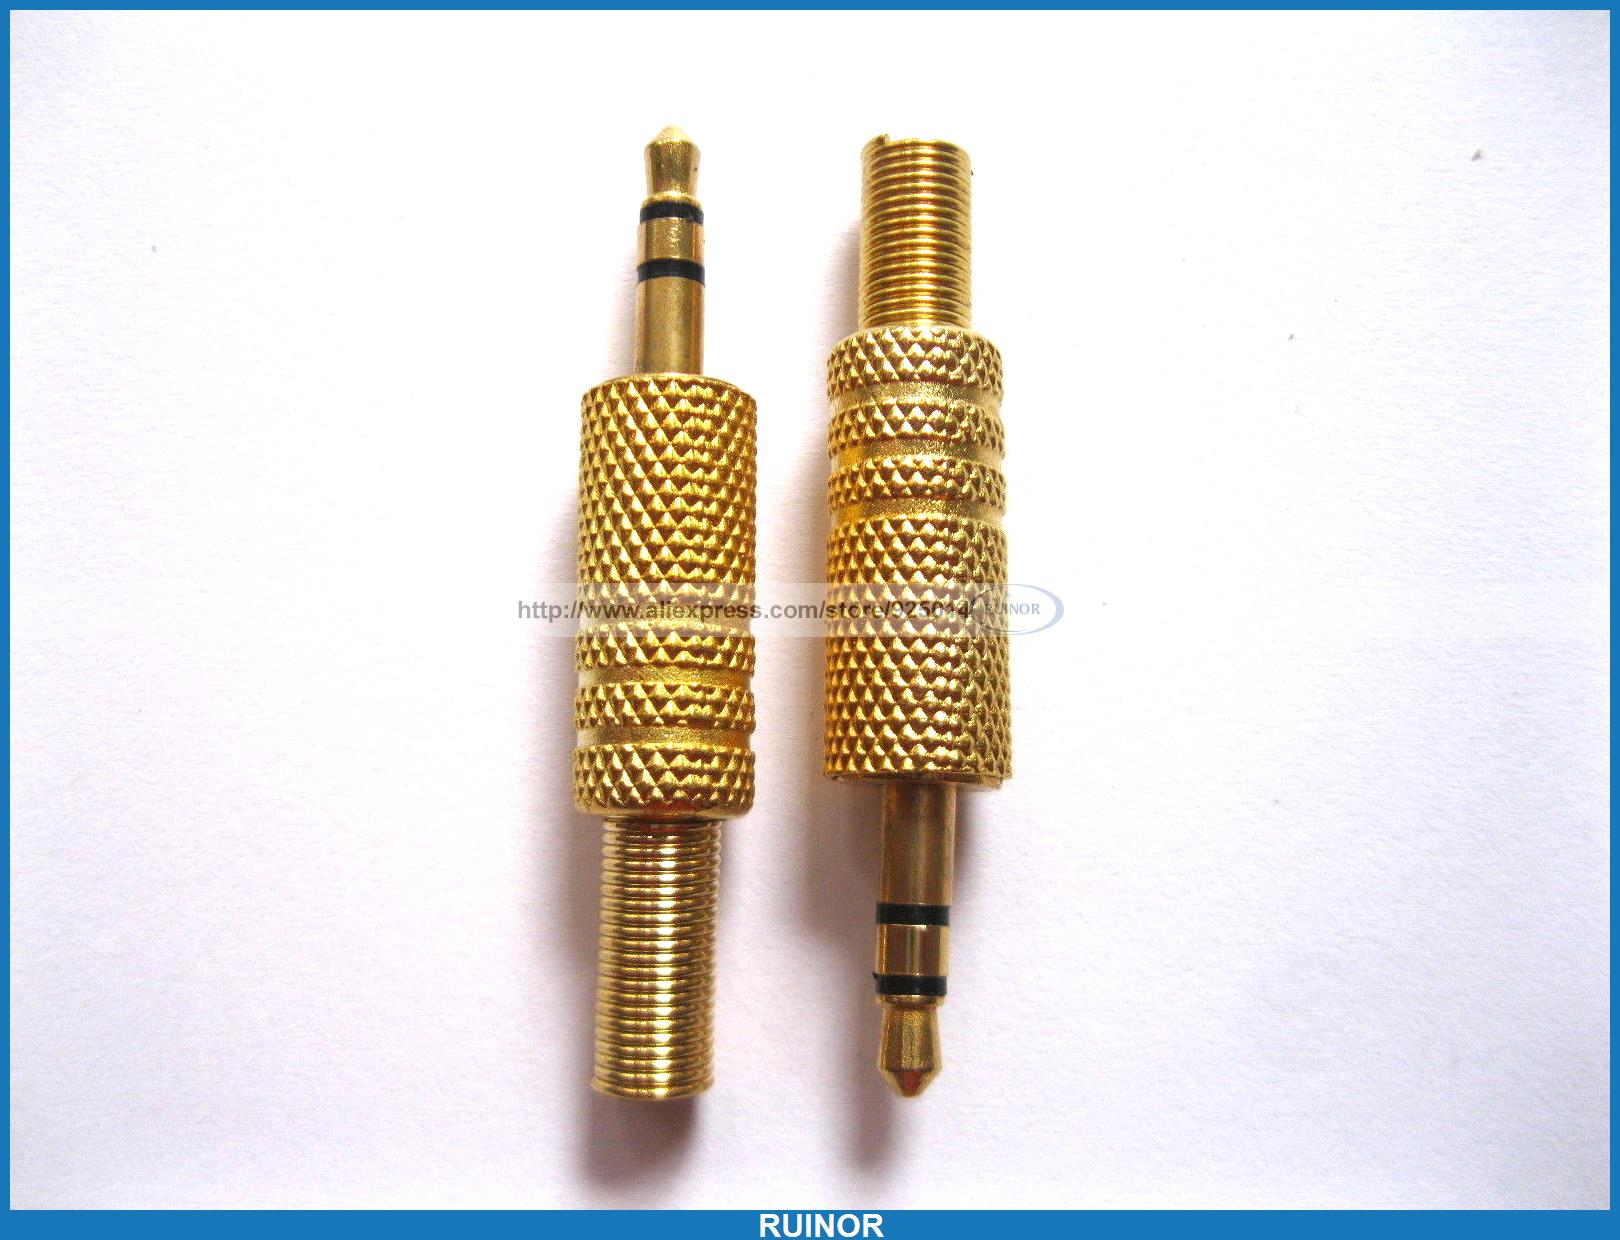 30 Pcs 3.5mm Stereo Audio Plug Gold Plated with Spring <br><br>Aliexpress